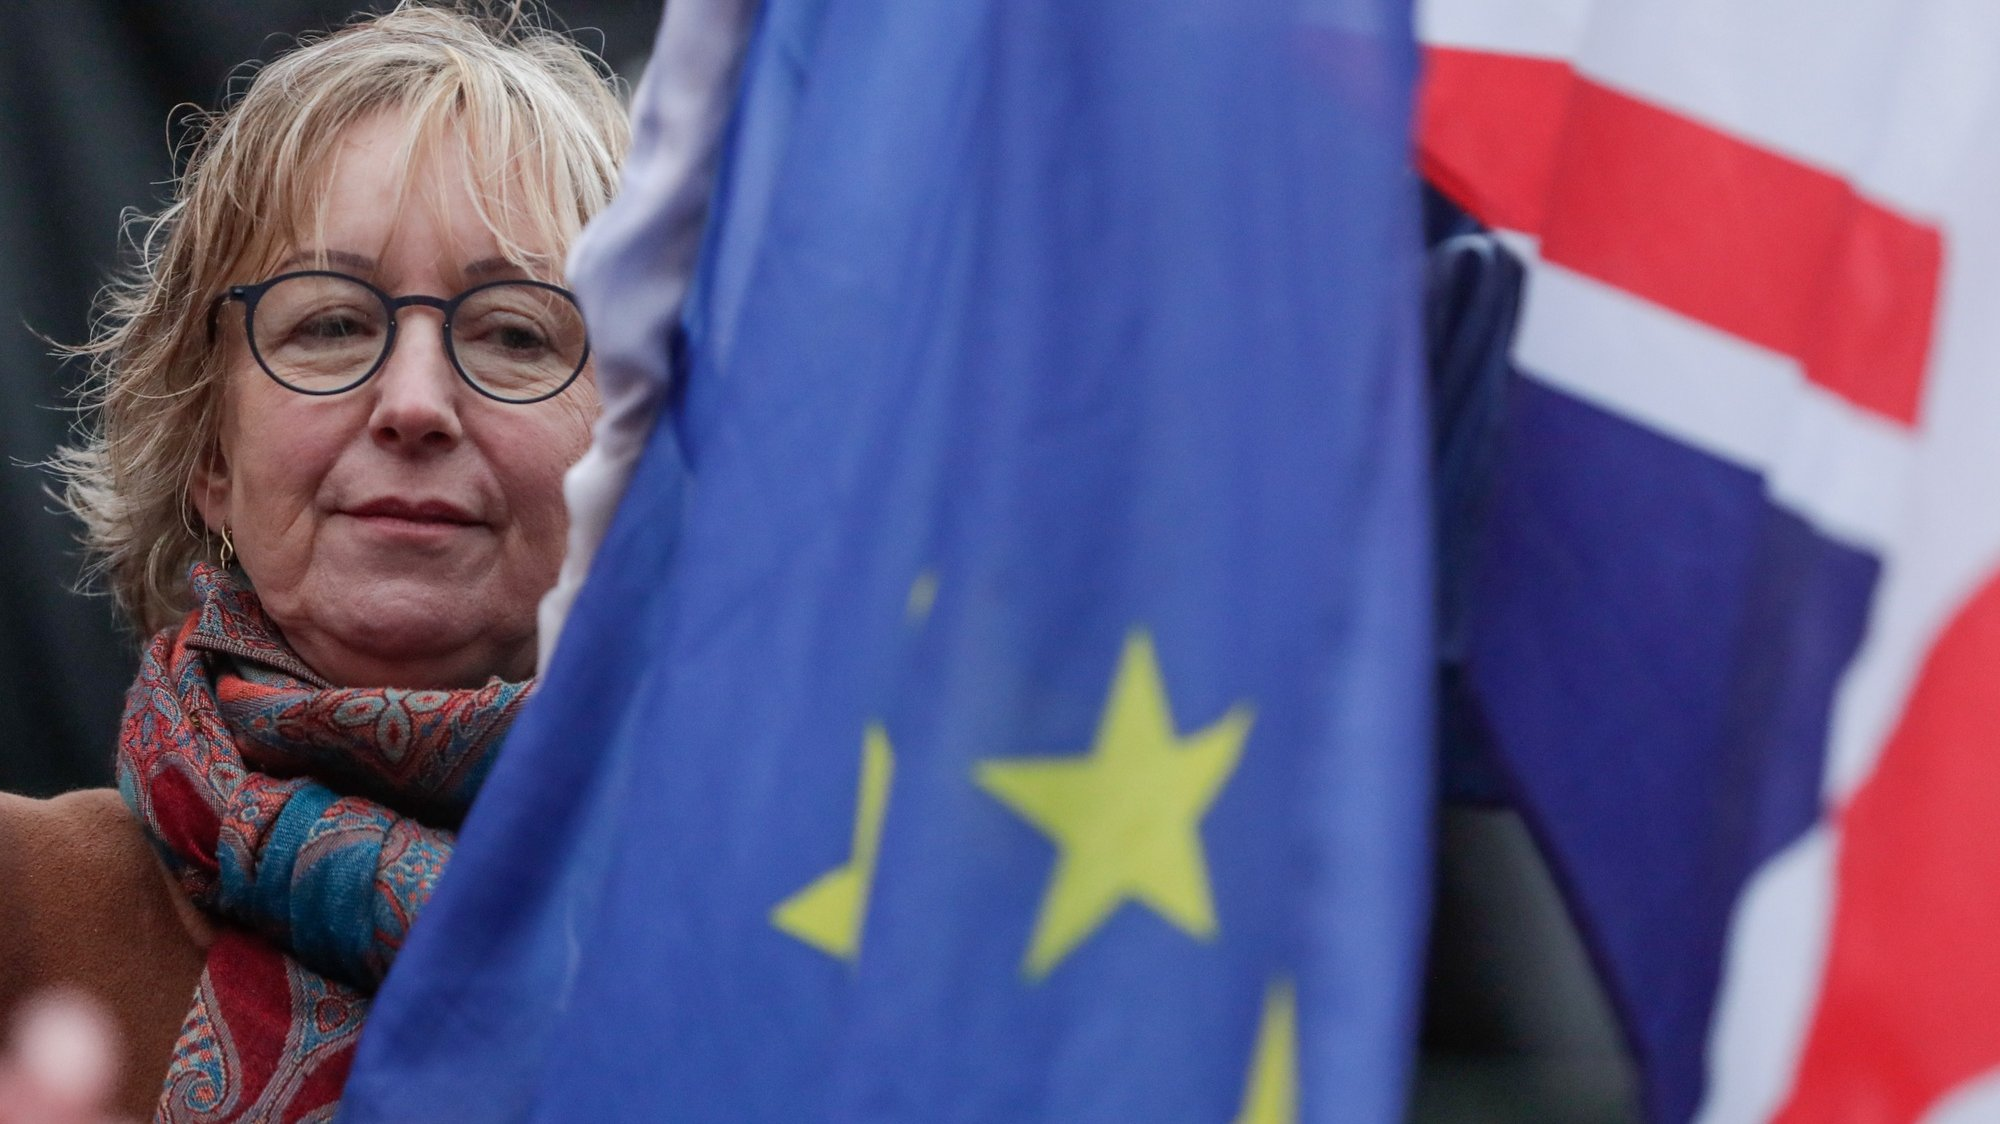 epa08179430 A woman holds a European flag and a Union Jack flag on the Grand Place in Brussels, Belgium, 30 January 2020. The city of Brussels is organizing the 'Brussels Calling' event to underline its long friendship with the British. The UK will leave the EU on 31 January 2020.  EPA/STEPHANIE LECOCQ